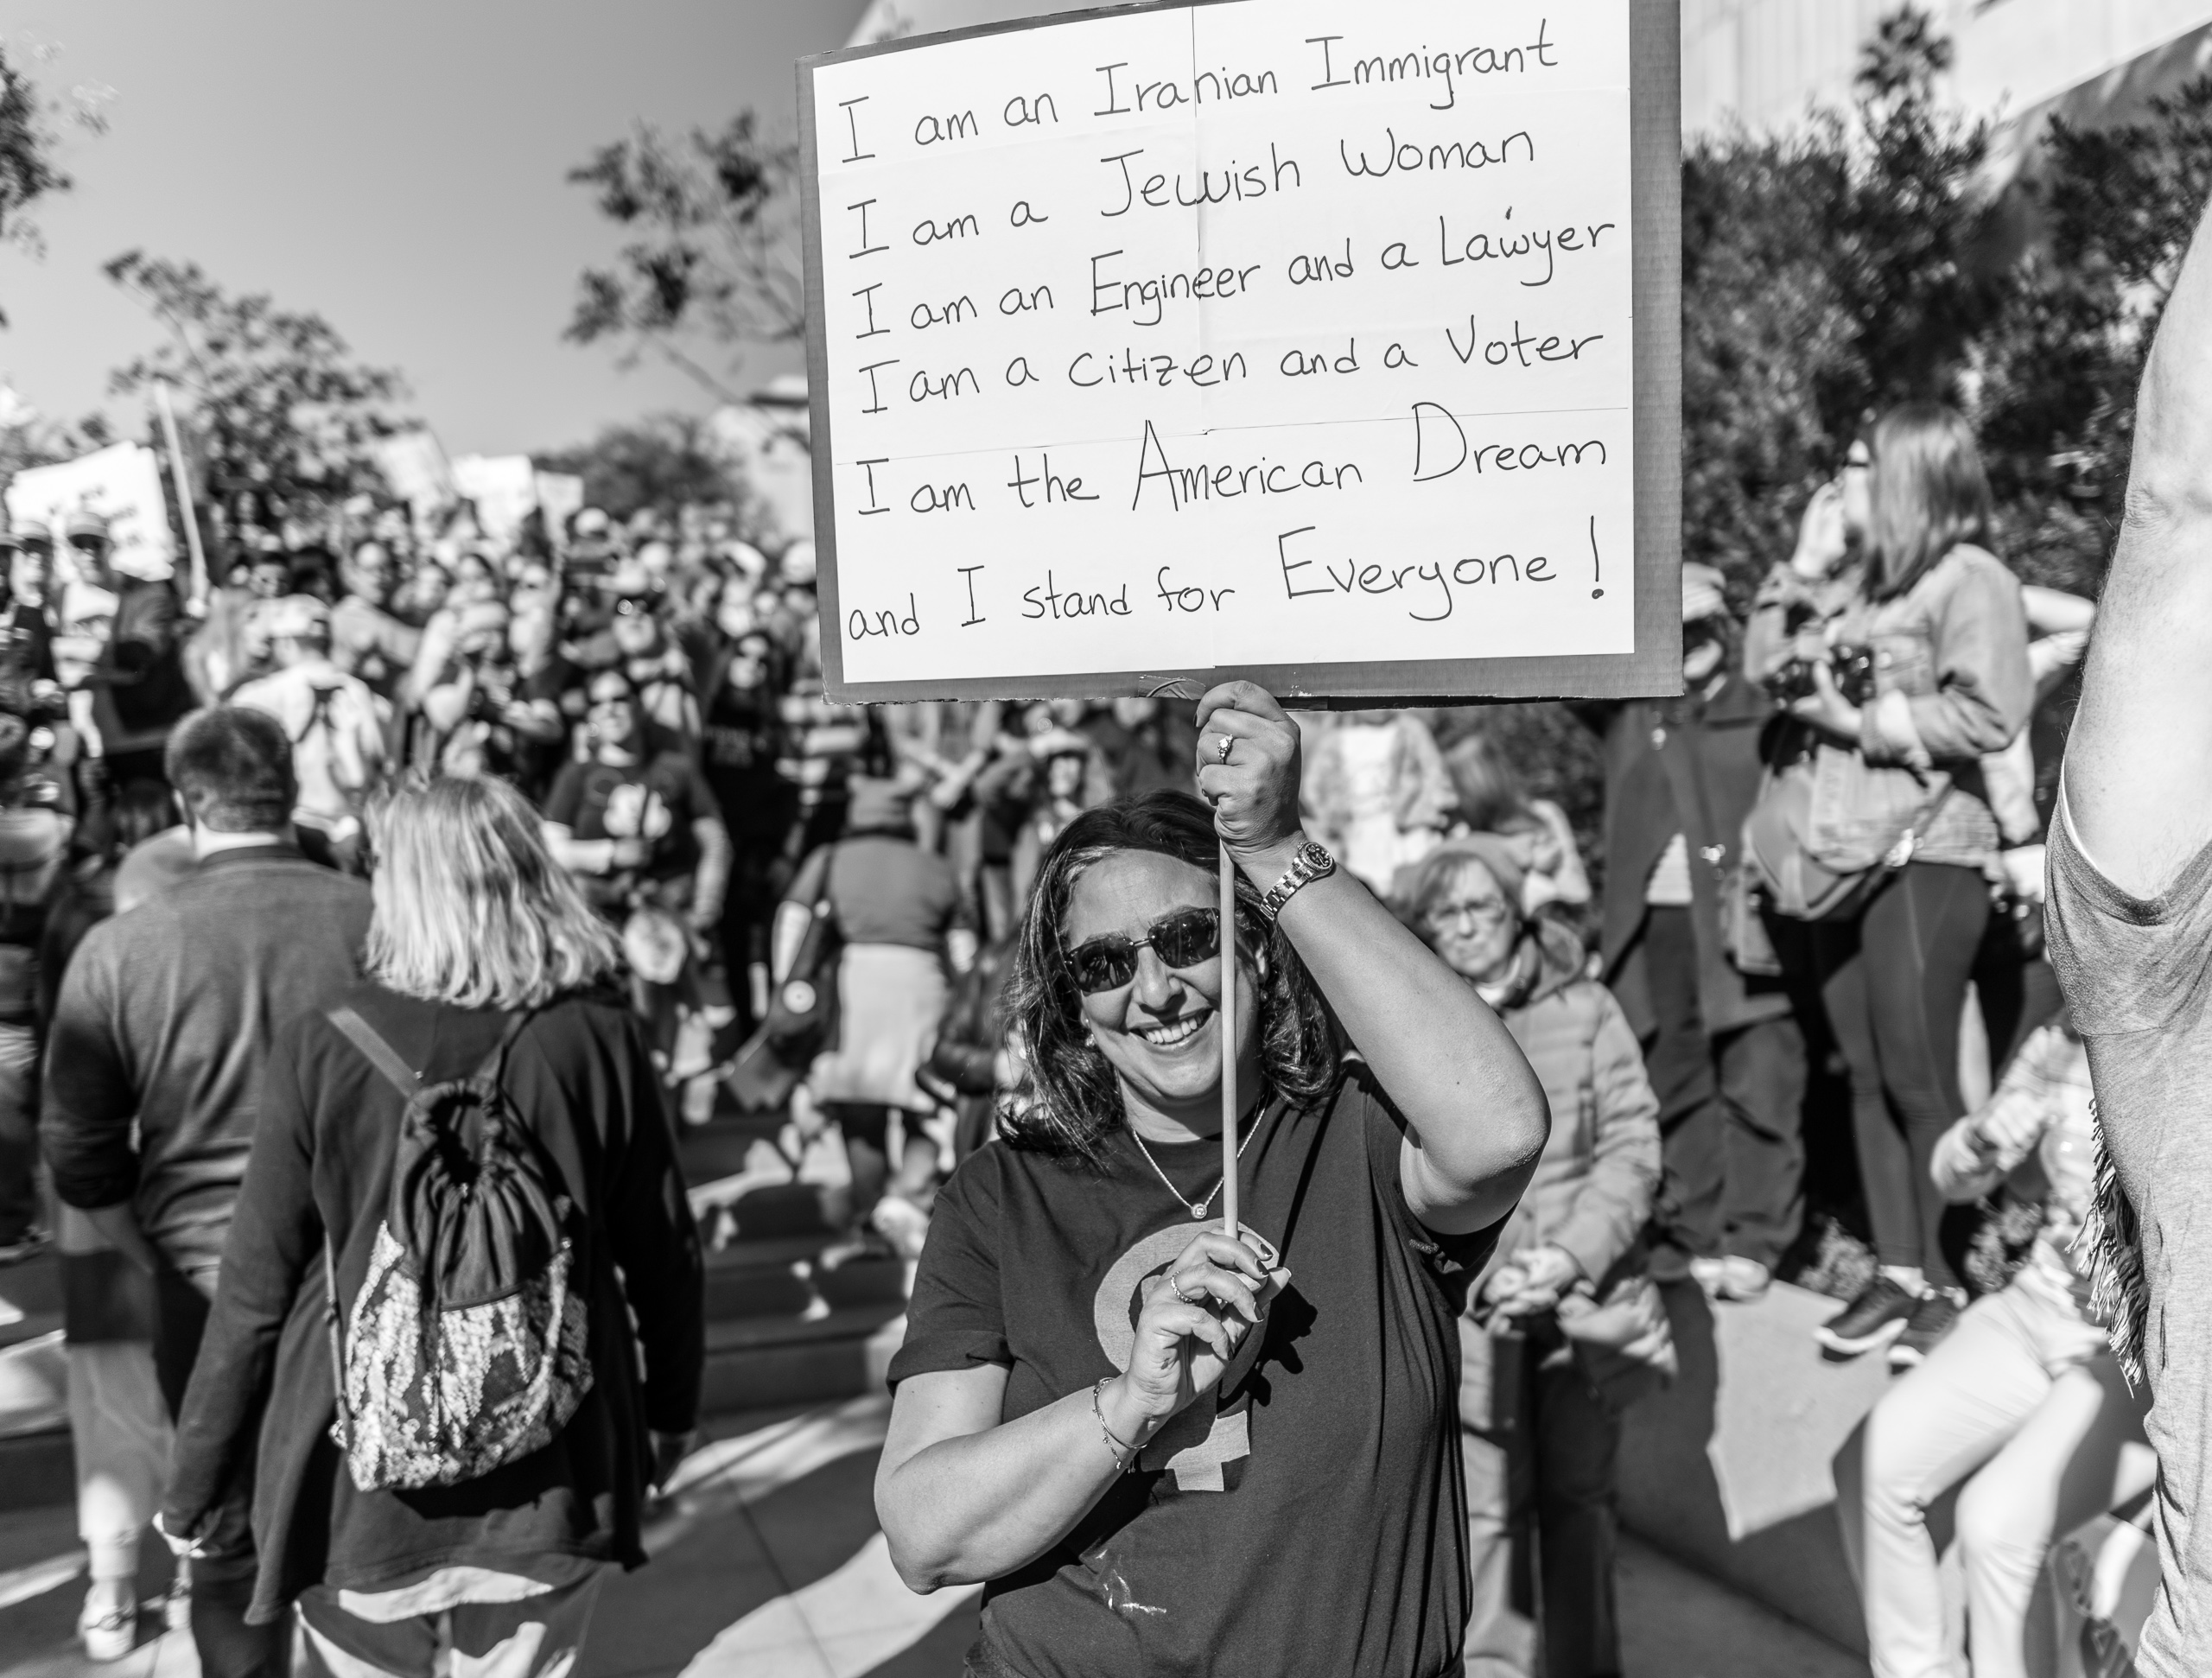 """A woman holds a sign over her head that reads, """"I am an Iranian Immigrant. I am a Jewish Woman. I am an engineer and a lawyer. I am a citizen and a voter. I am the American Dream. And I stand for everyone!"""""""